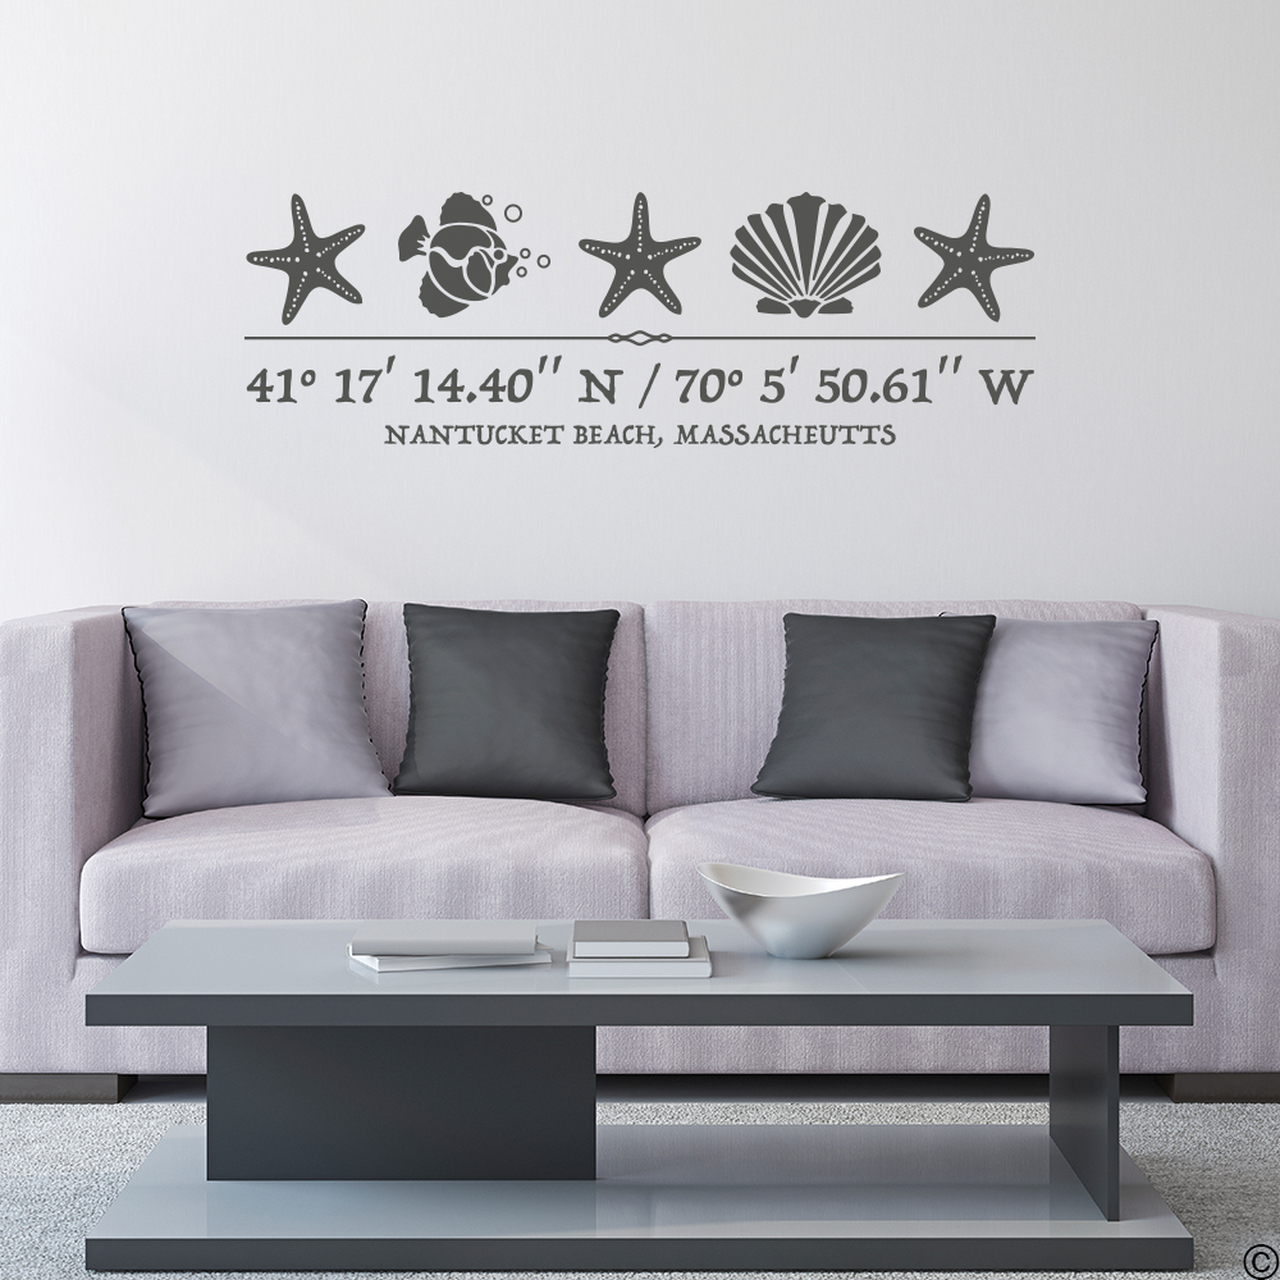 Sea Life wall decal, includes three starfish, one shell, one fish, and customizable GPS coordinates with town and state name. Shown here in dark grey vinyl and on a wall above a couch.